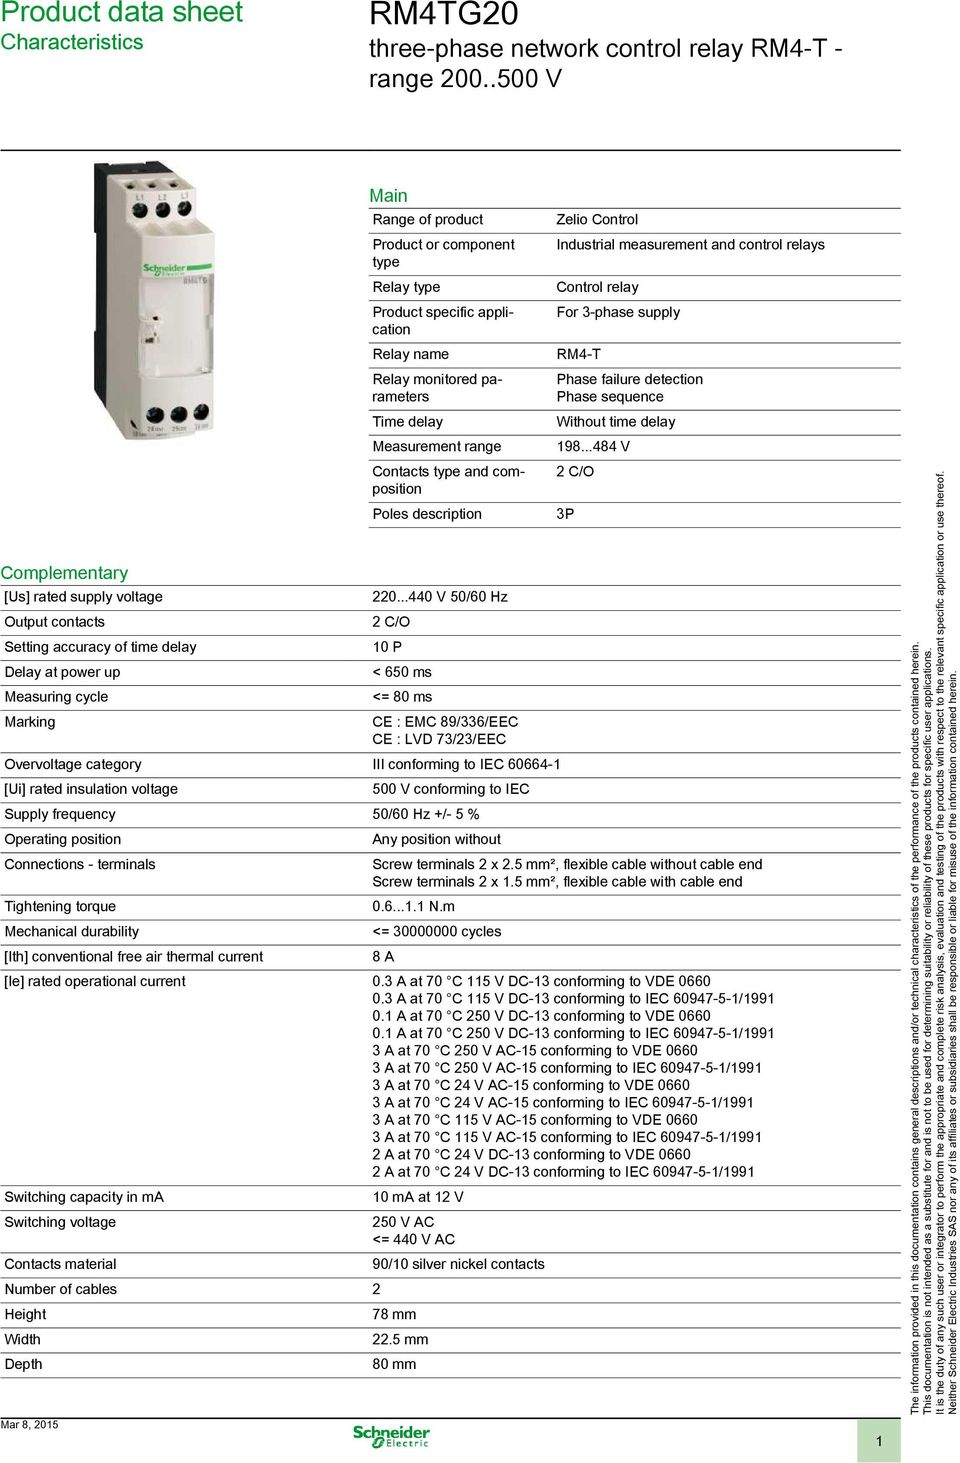 Product specific application Relay name Relay monitored parameters Time delay Measurement range Contacts type and composition Poles description 220.